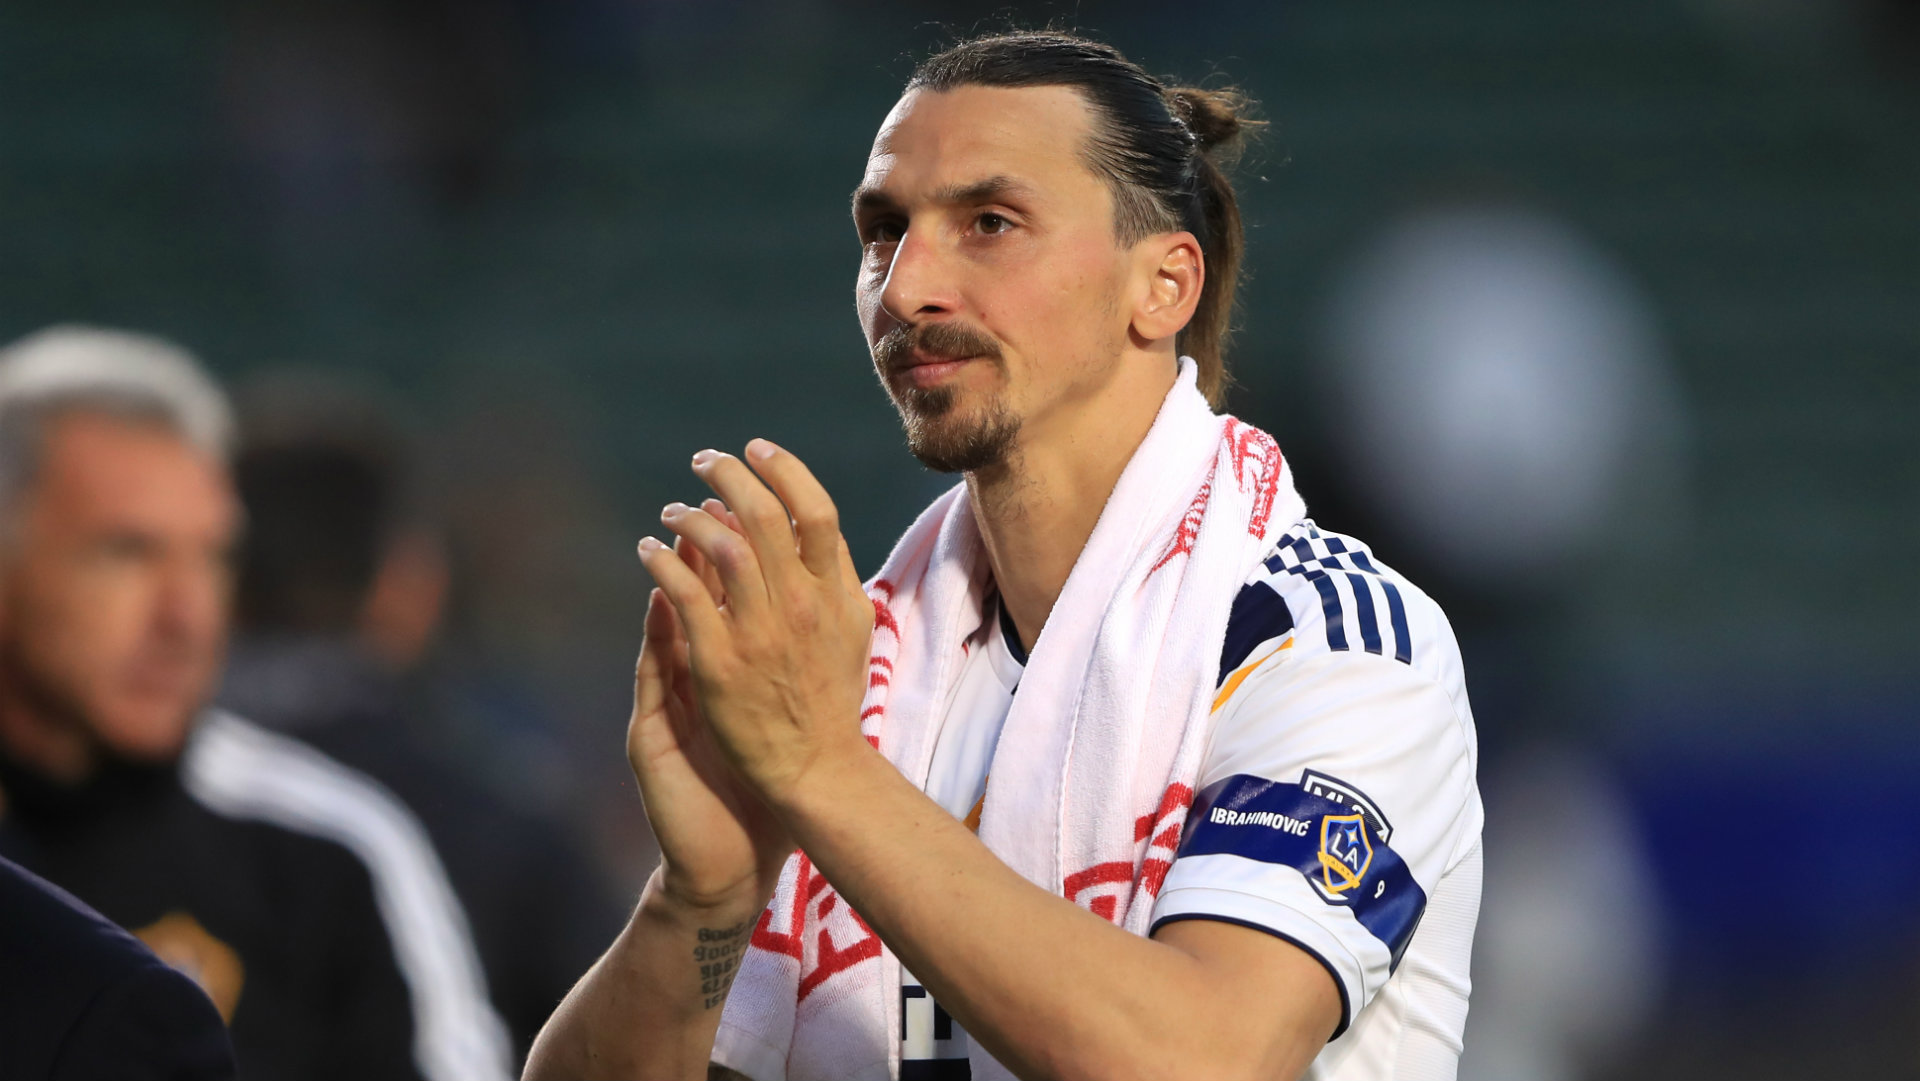 'If he hadn't played for Man Utd, maybe' – Klopp laughs off Ibrahimovic to Liverpool question